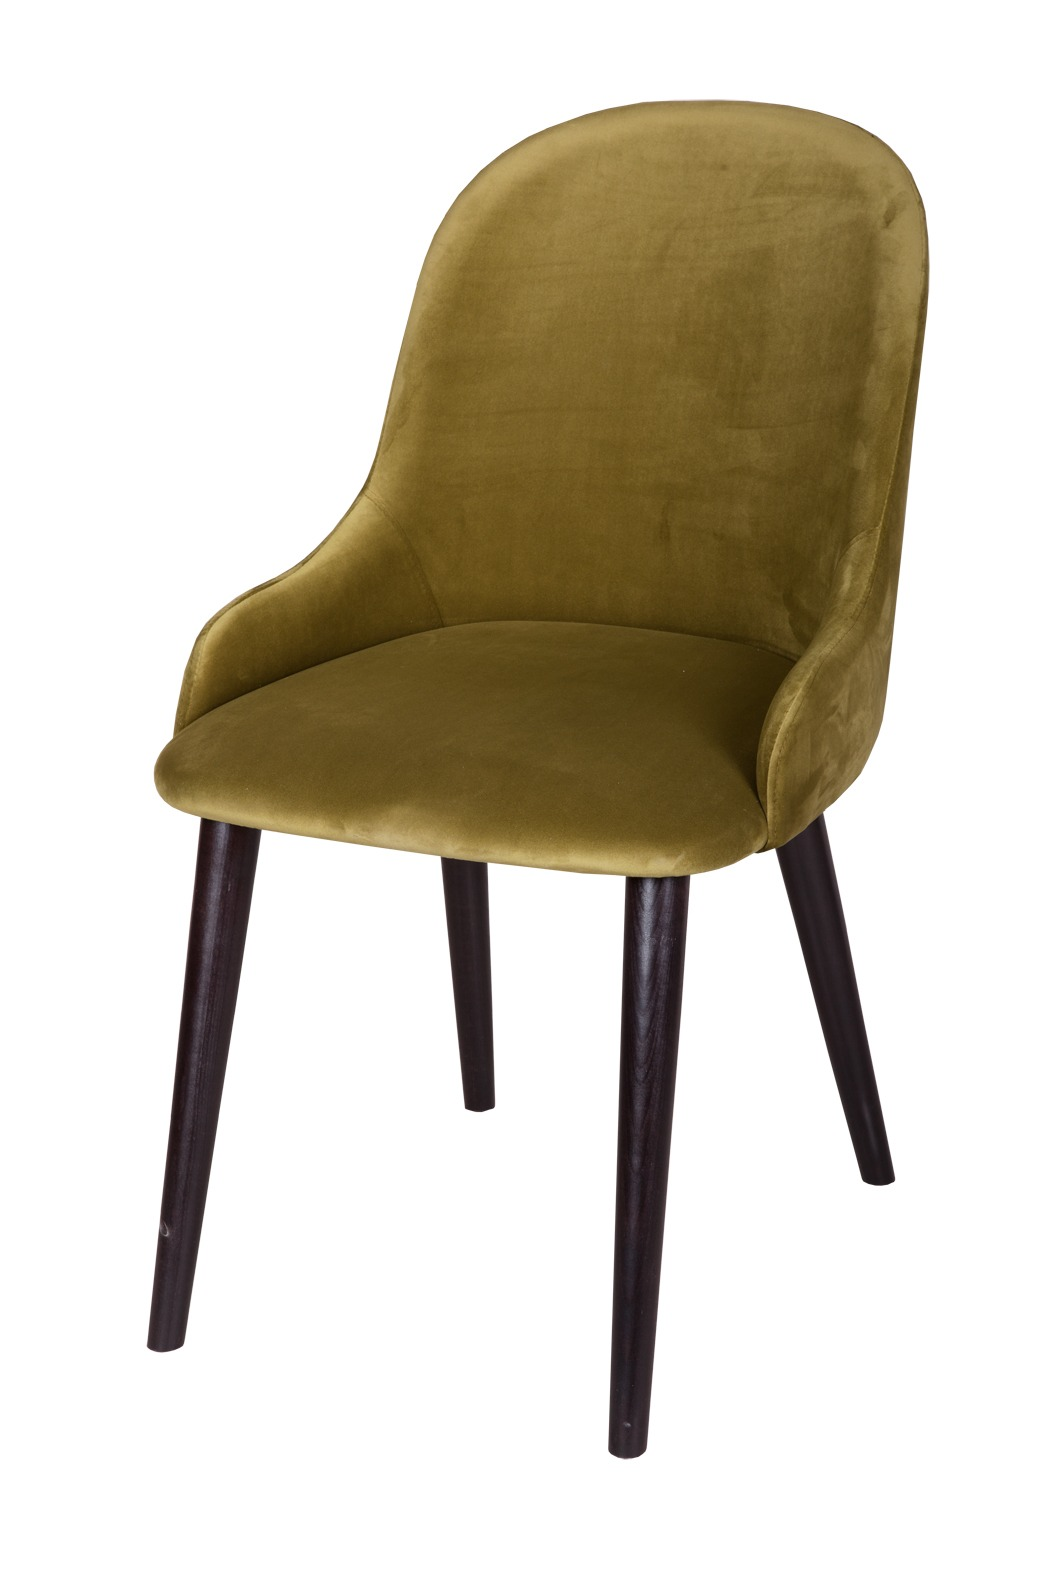 Solid wood chair 1393A